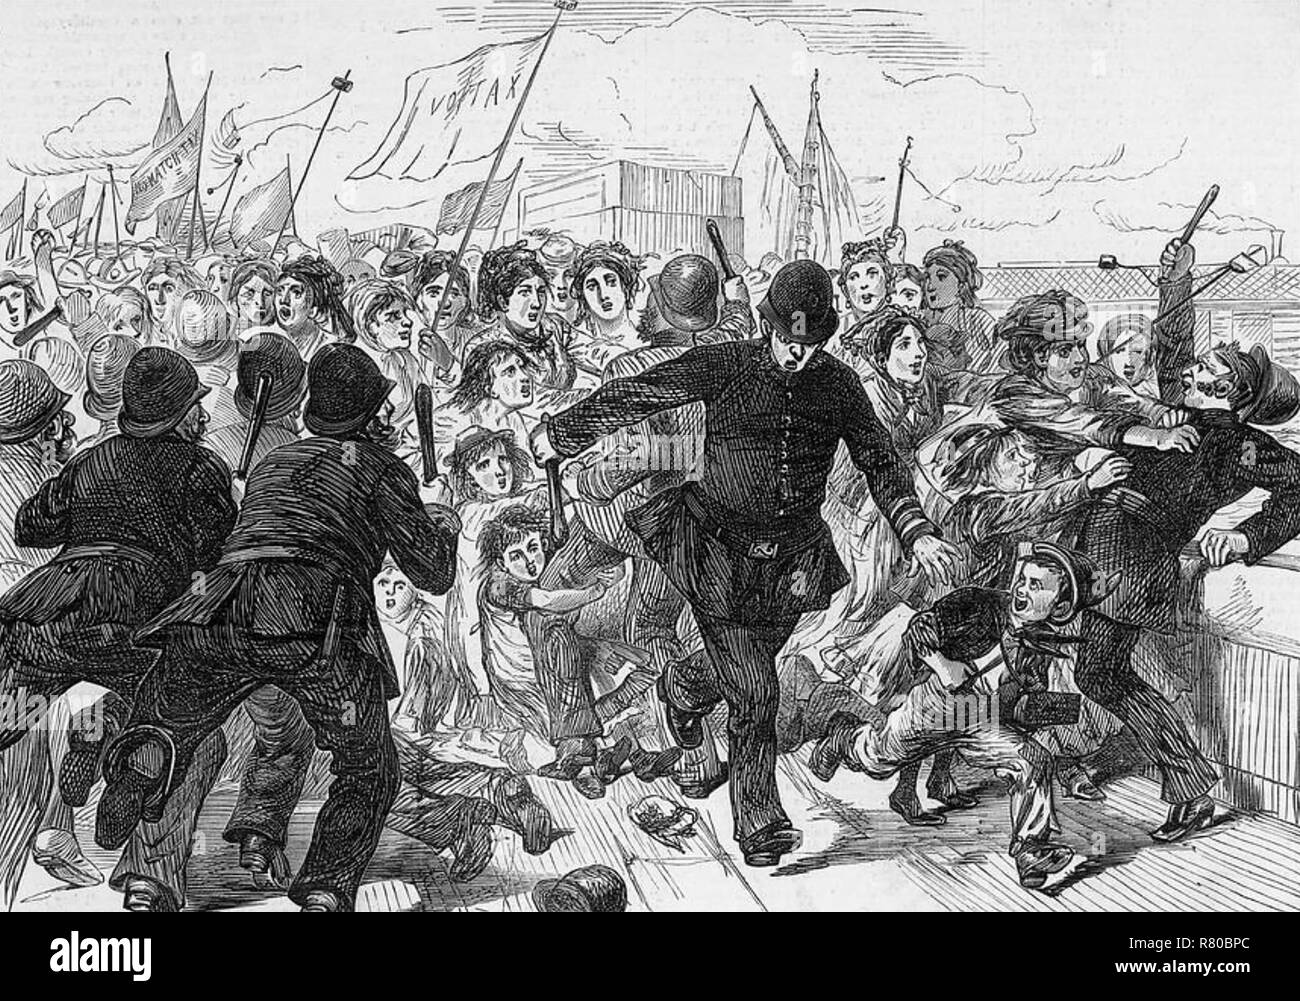 MATCH WORKERS PROTEST 1871. London police attempt to break up the strike - Stock Image